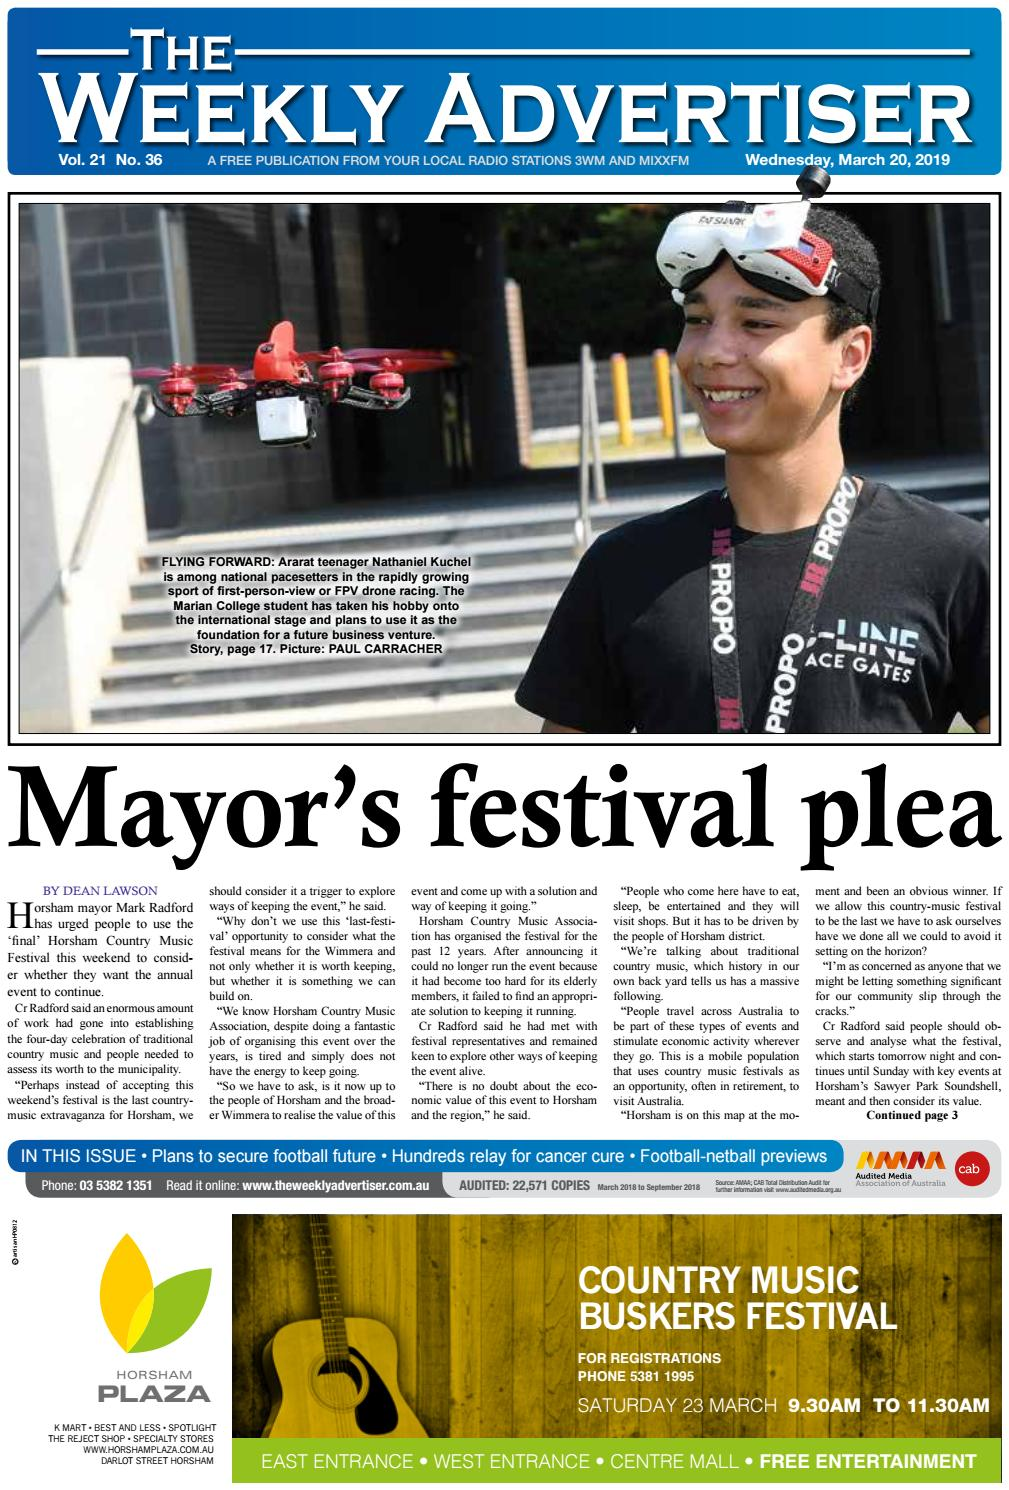 6989d5eb The Weekly Advertiser - Wednesday, March 20, 2019 by The Weekly Advertiser  - issuu